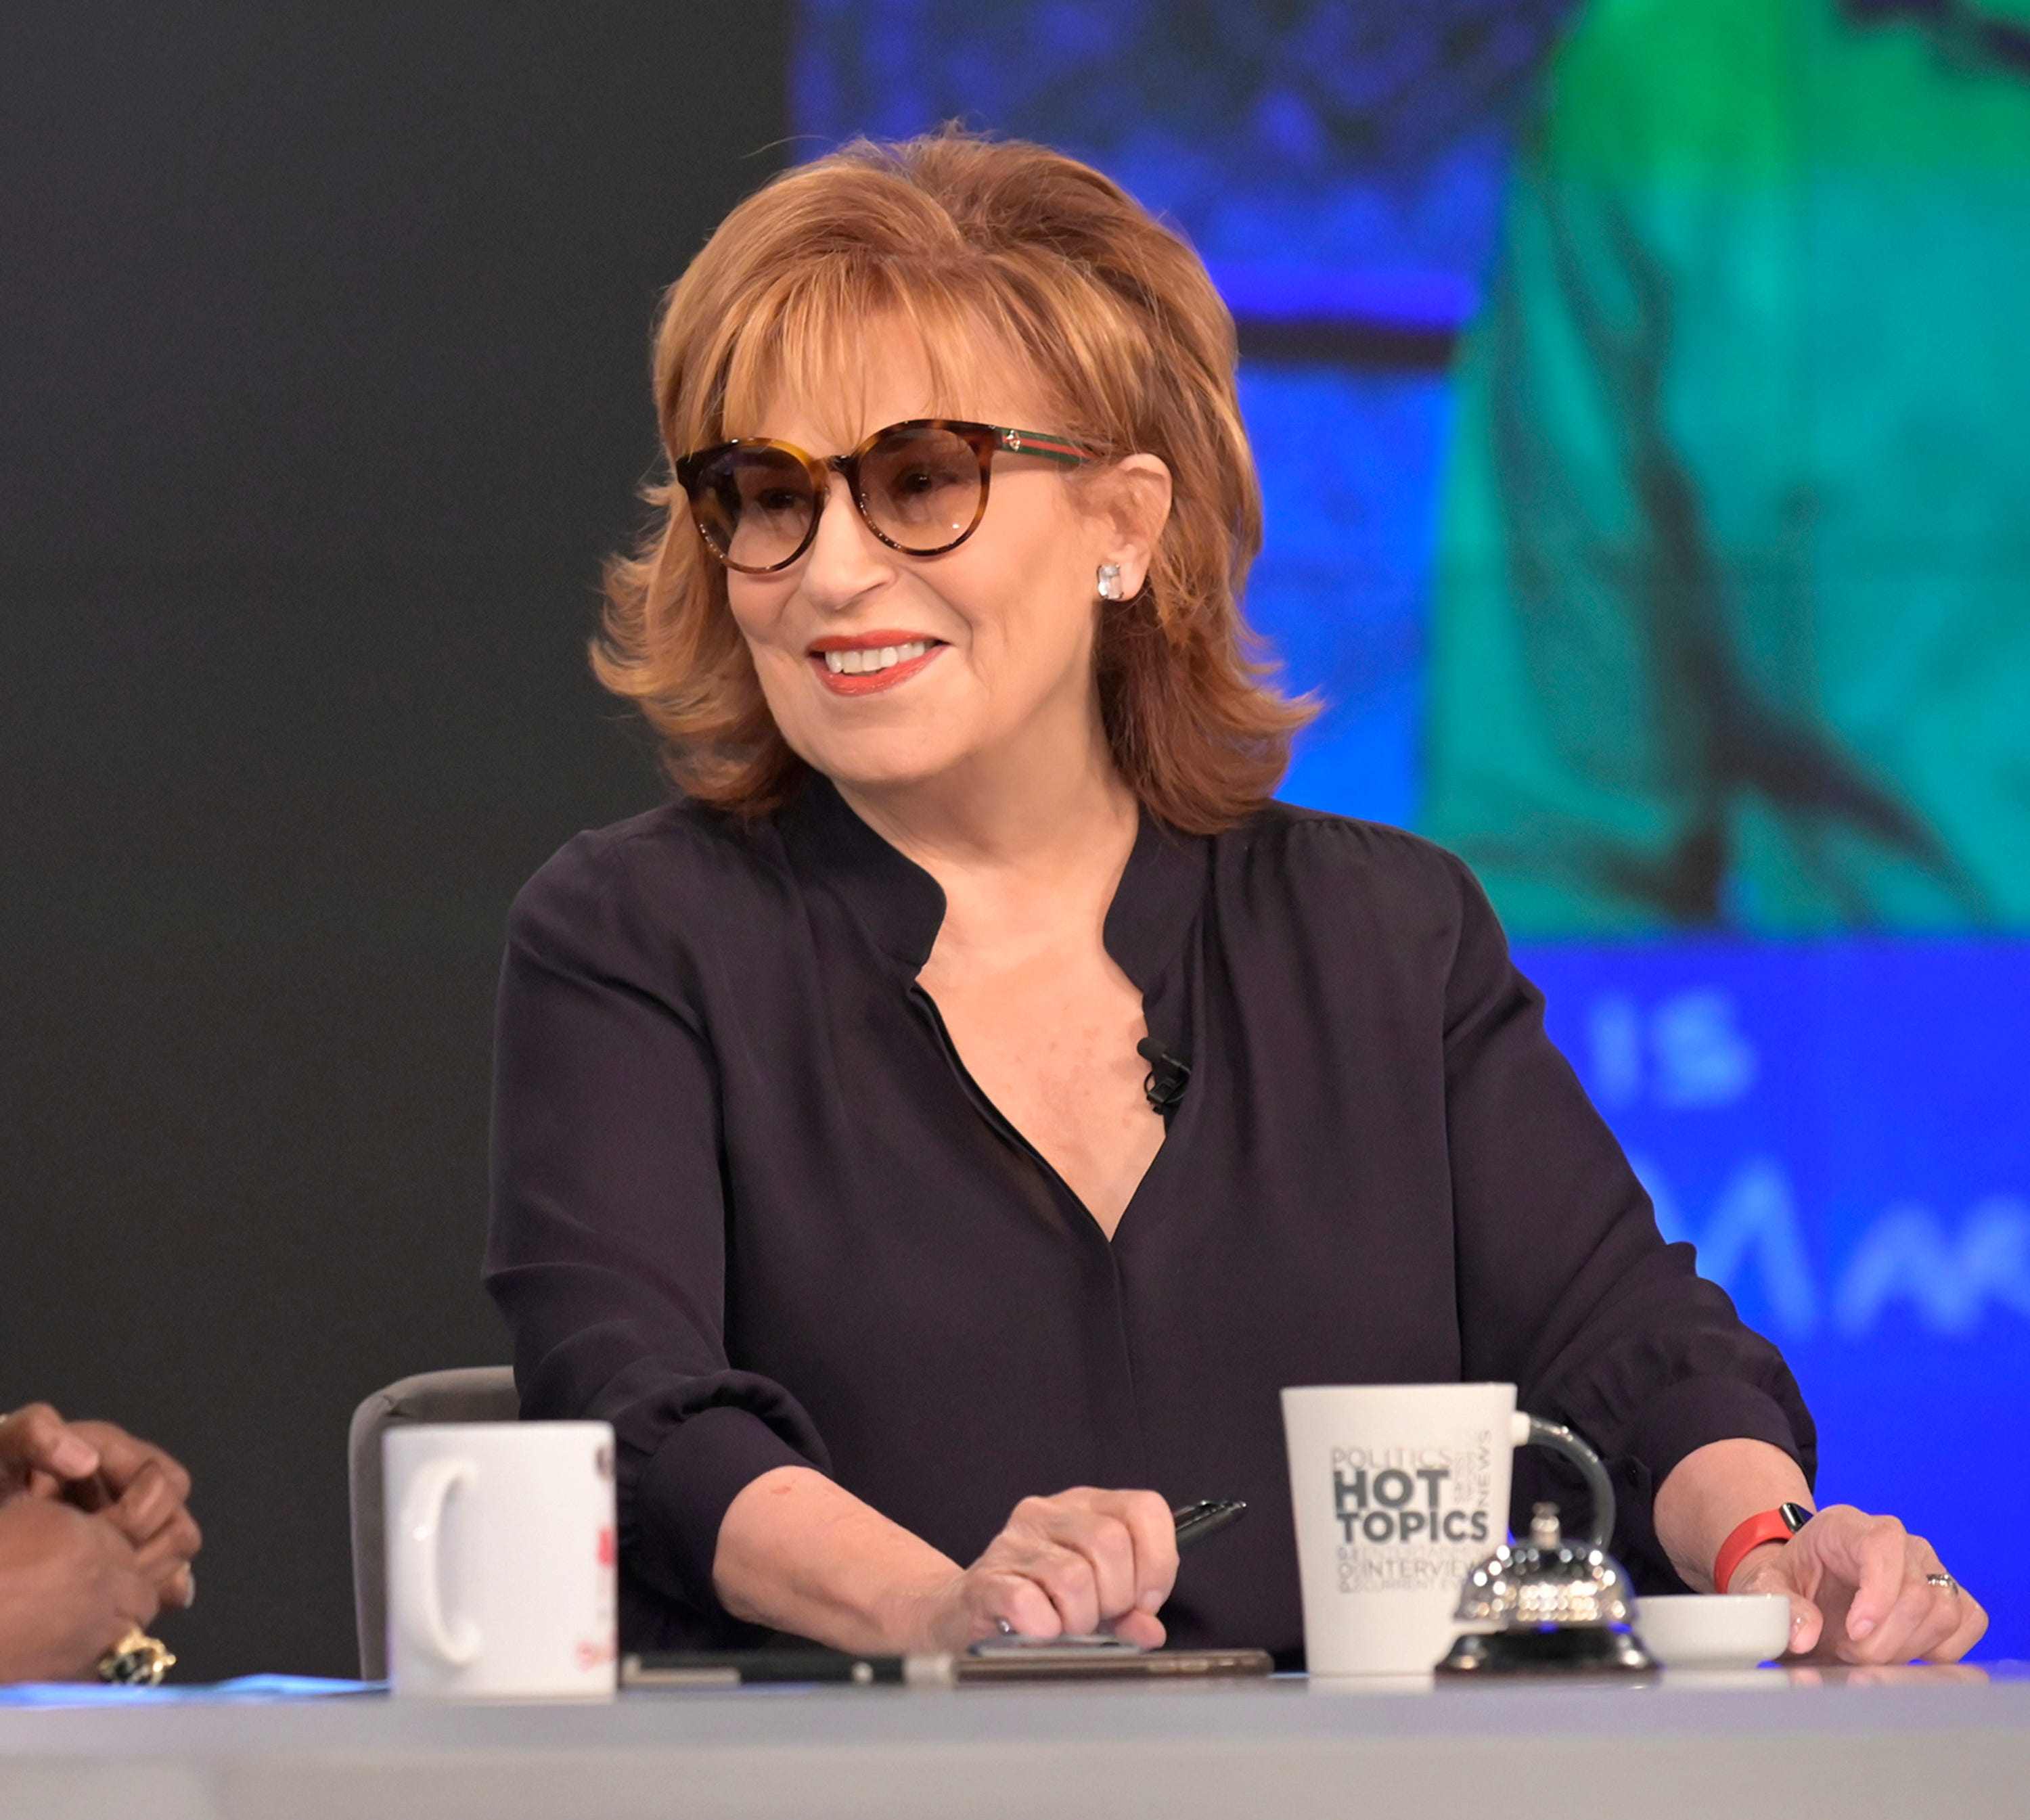 The View': Joy Behar wearing sunglasses after cataract surgery